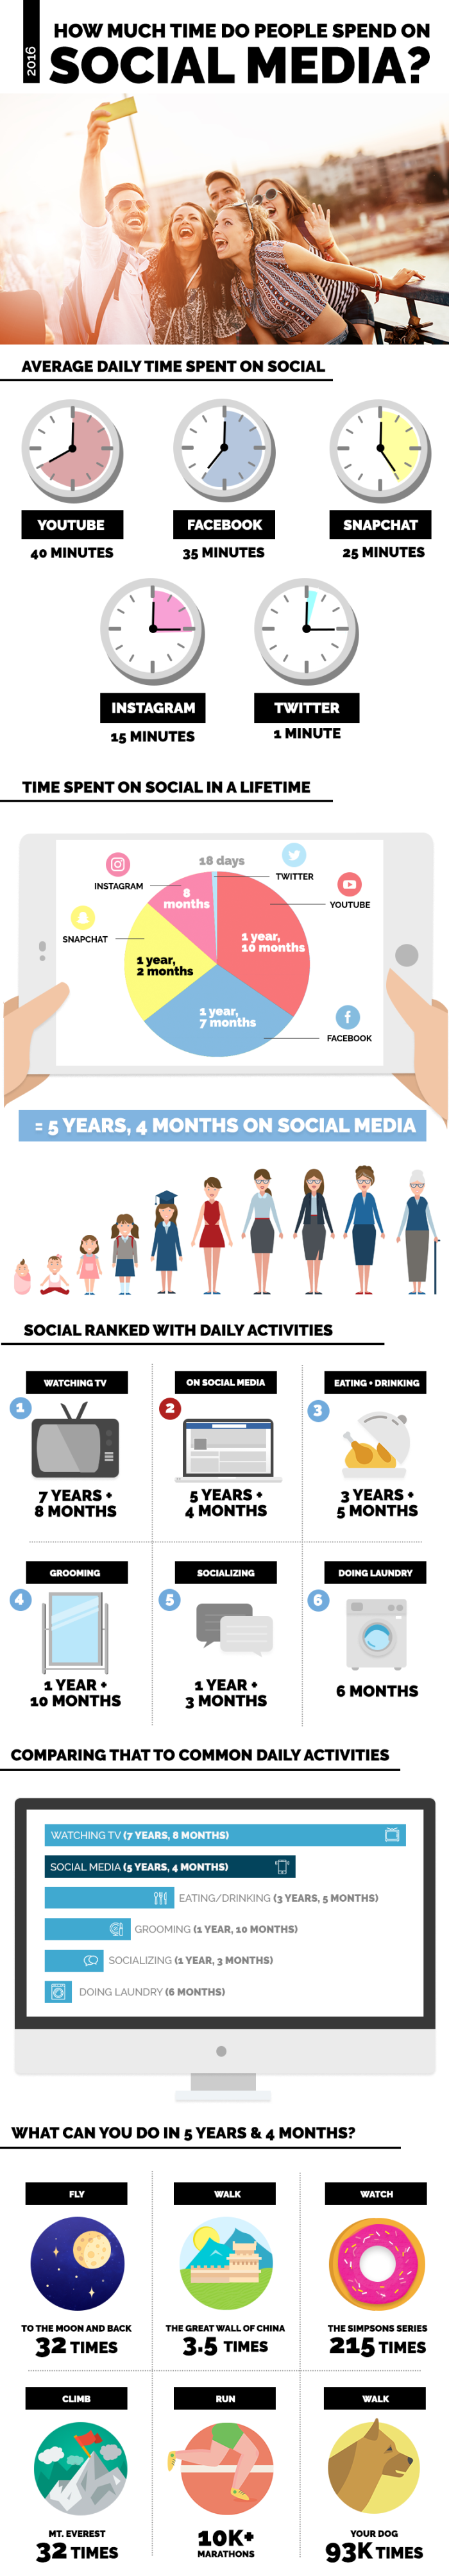 How-Much-Time-Is-Spent-On-Social-Media-REVISED